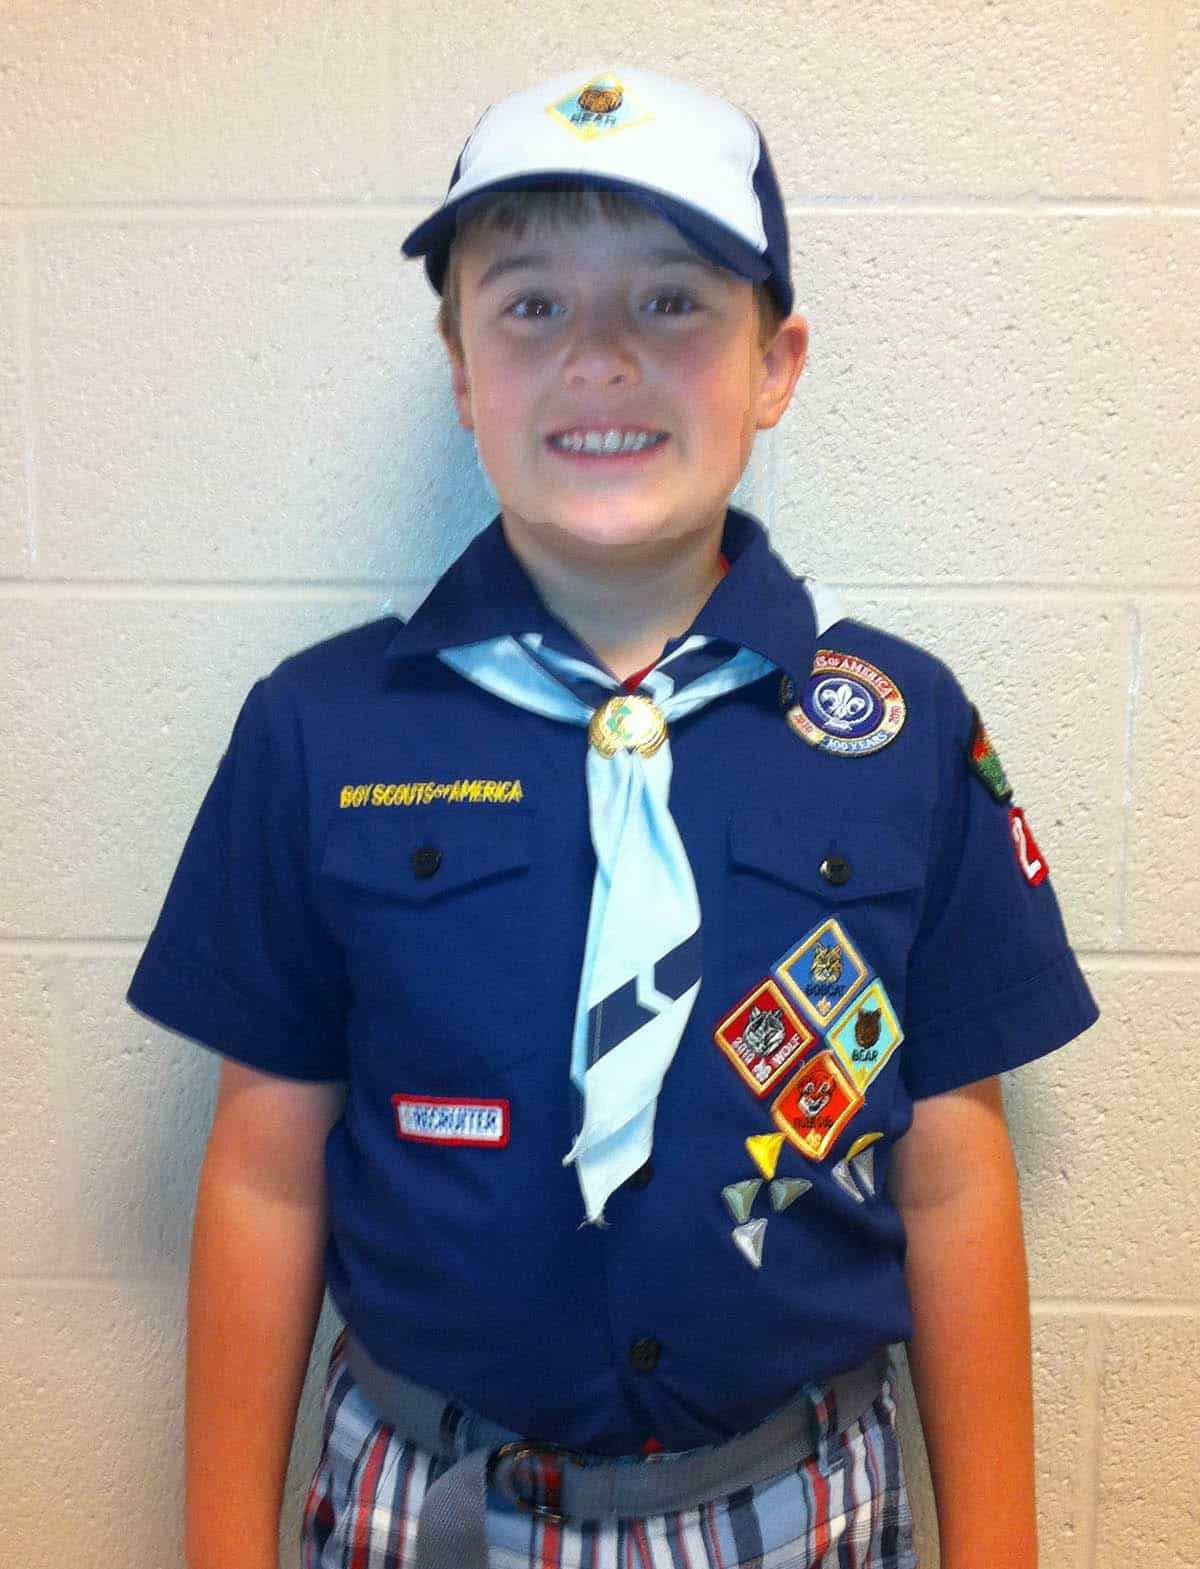 The Most Important Tip For Buying A Cub Scout Uniform